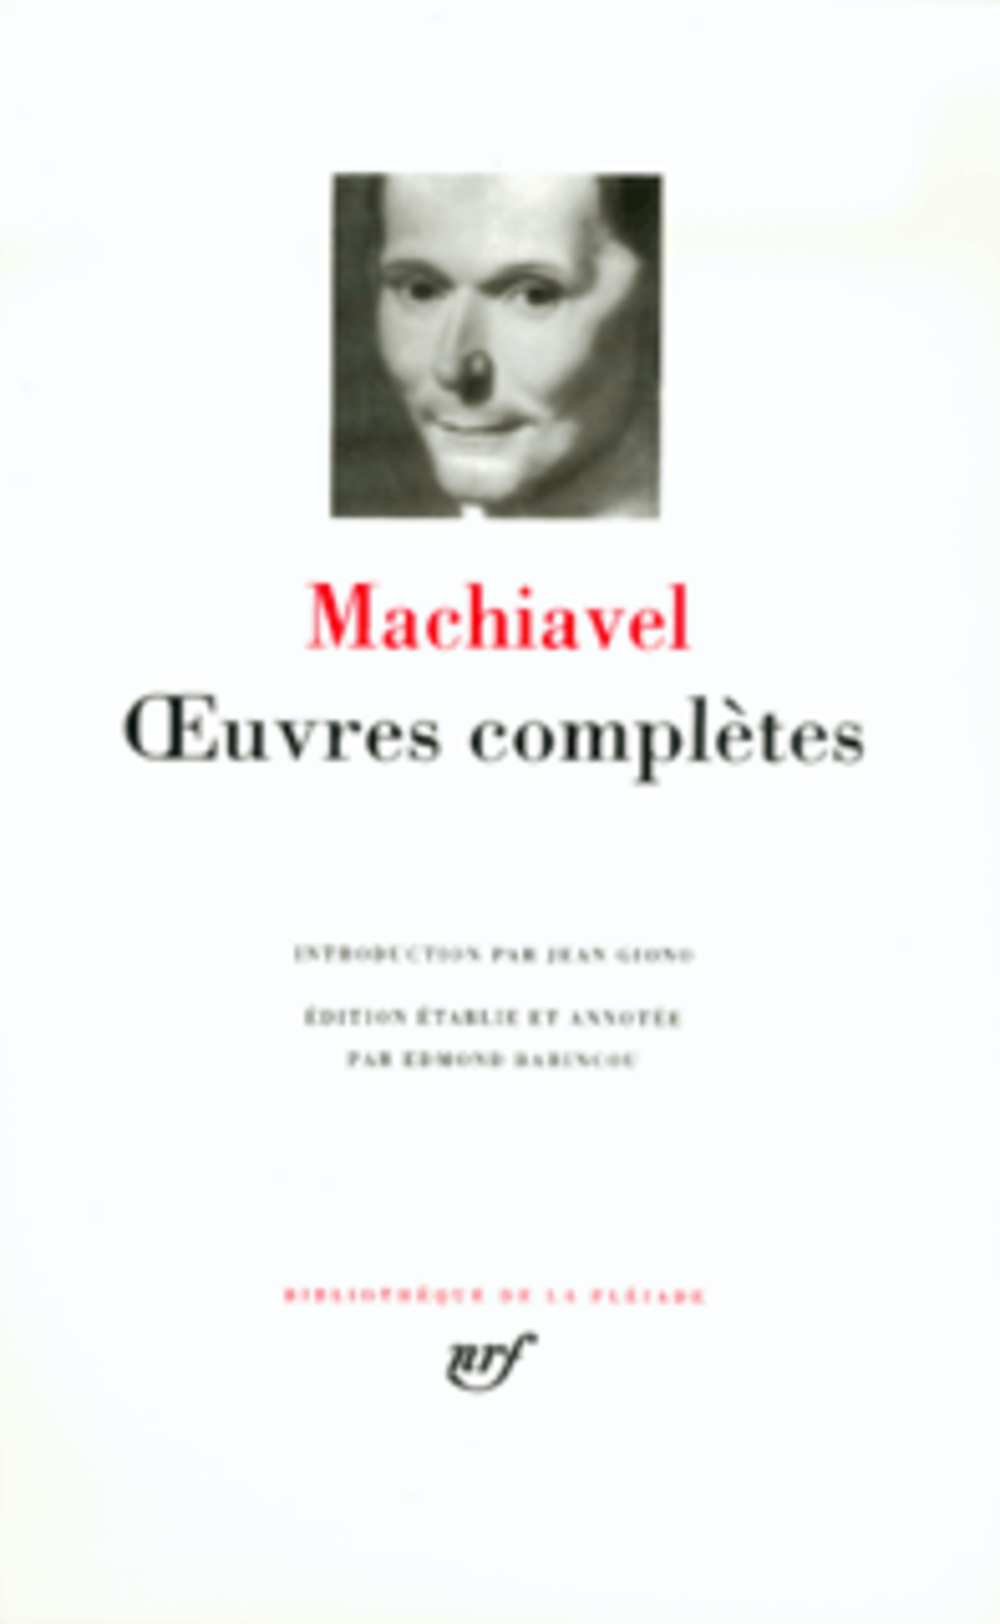 OEUVRES COMPLETES MACHIAVEL GALLIMARD